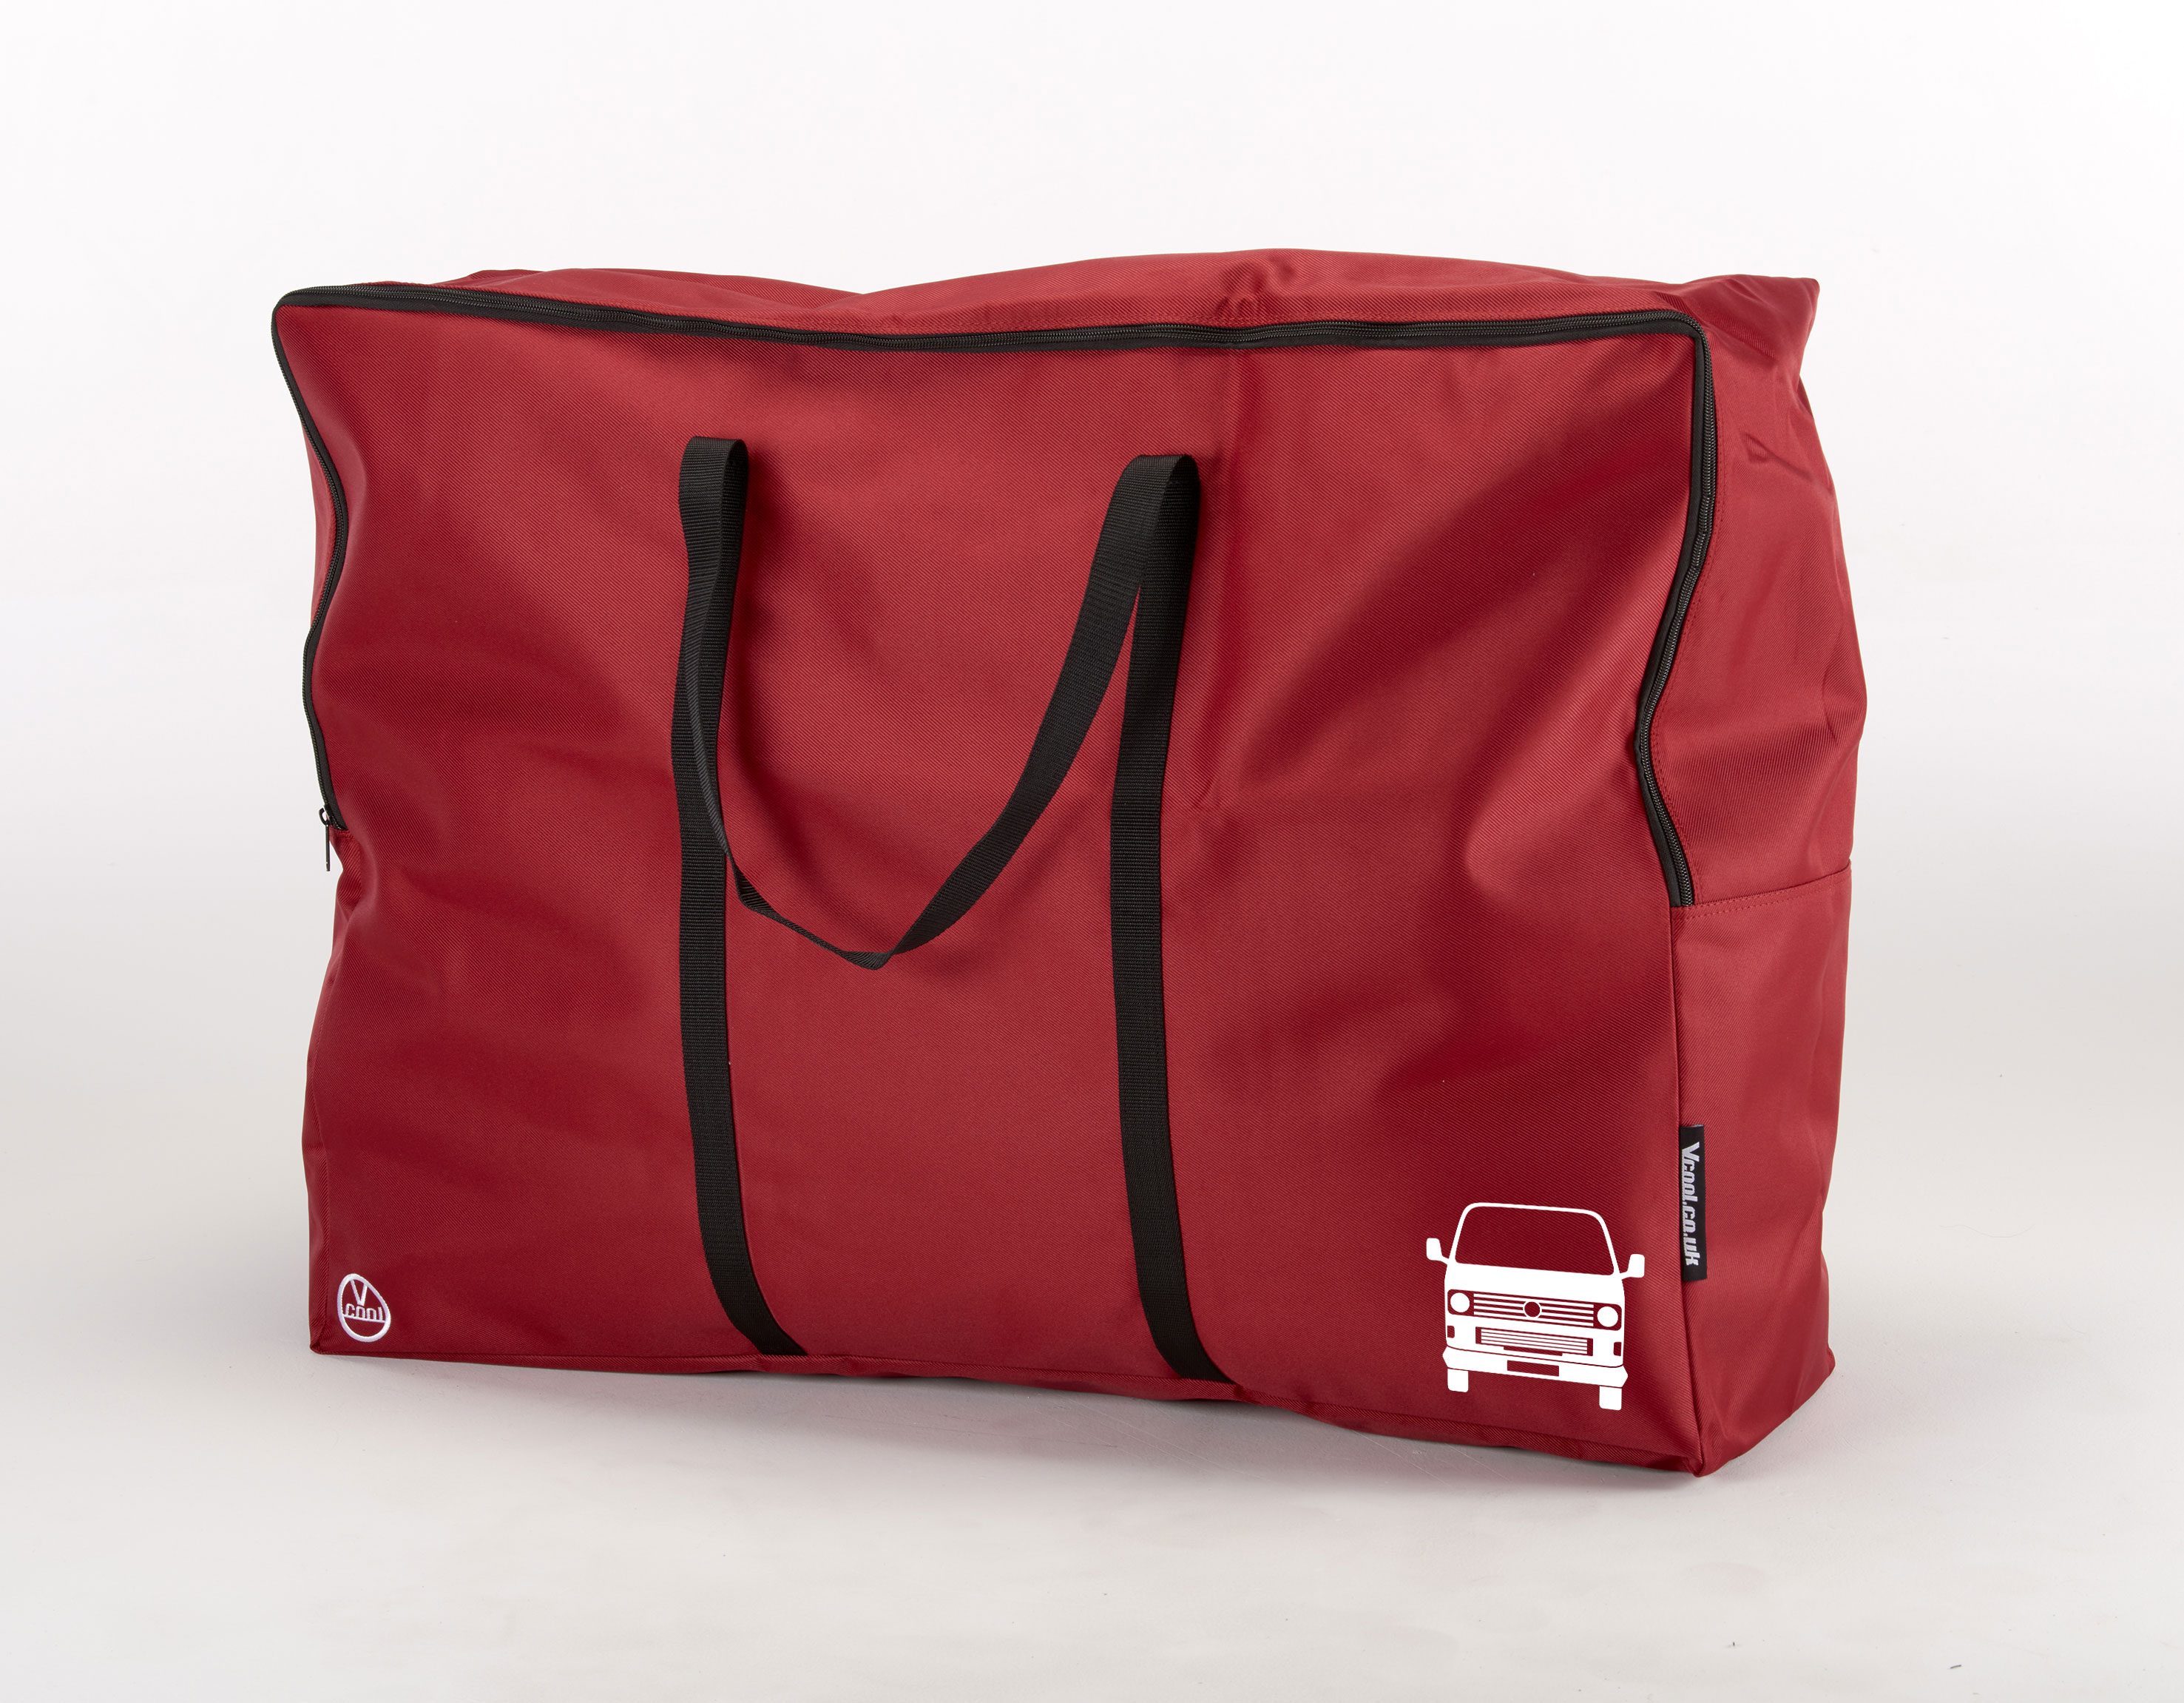 Vcool Heavy Duty Awning Storage Bag For T25 T3